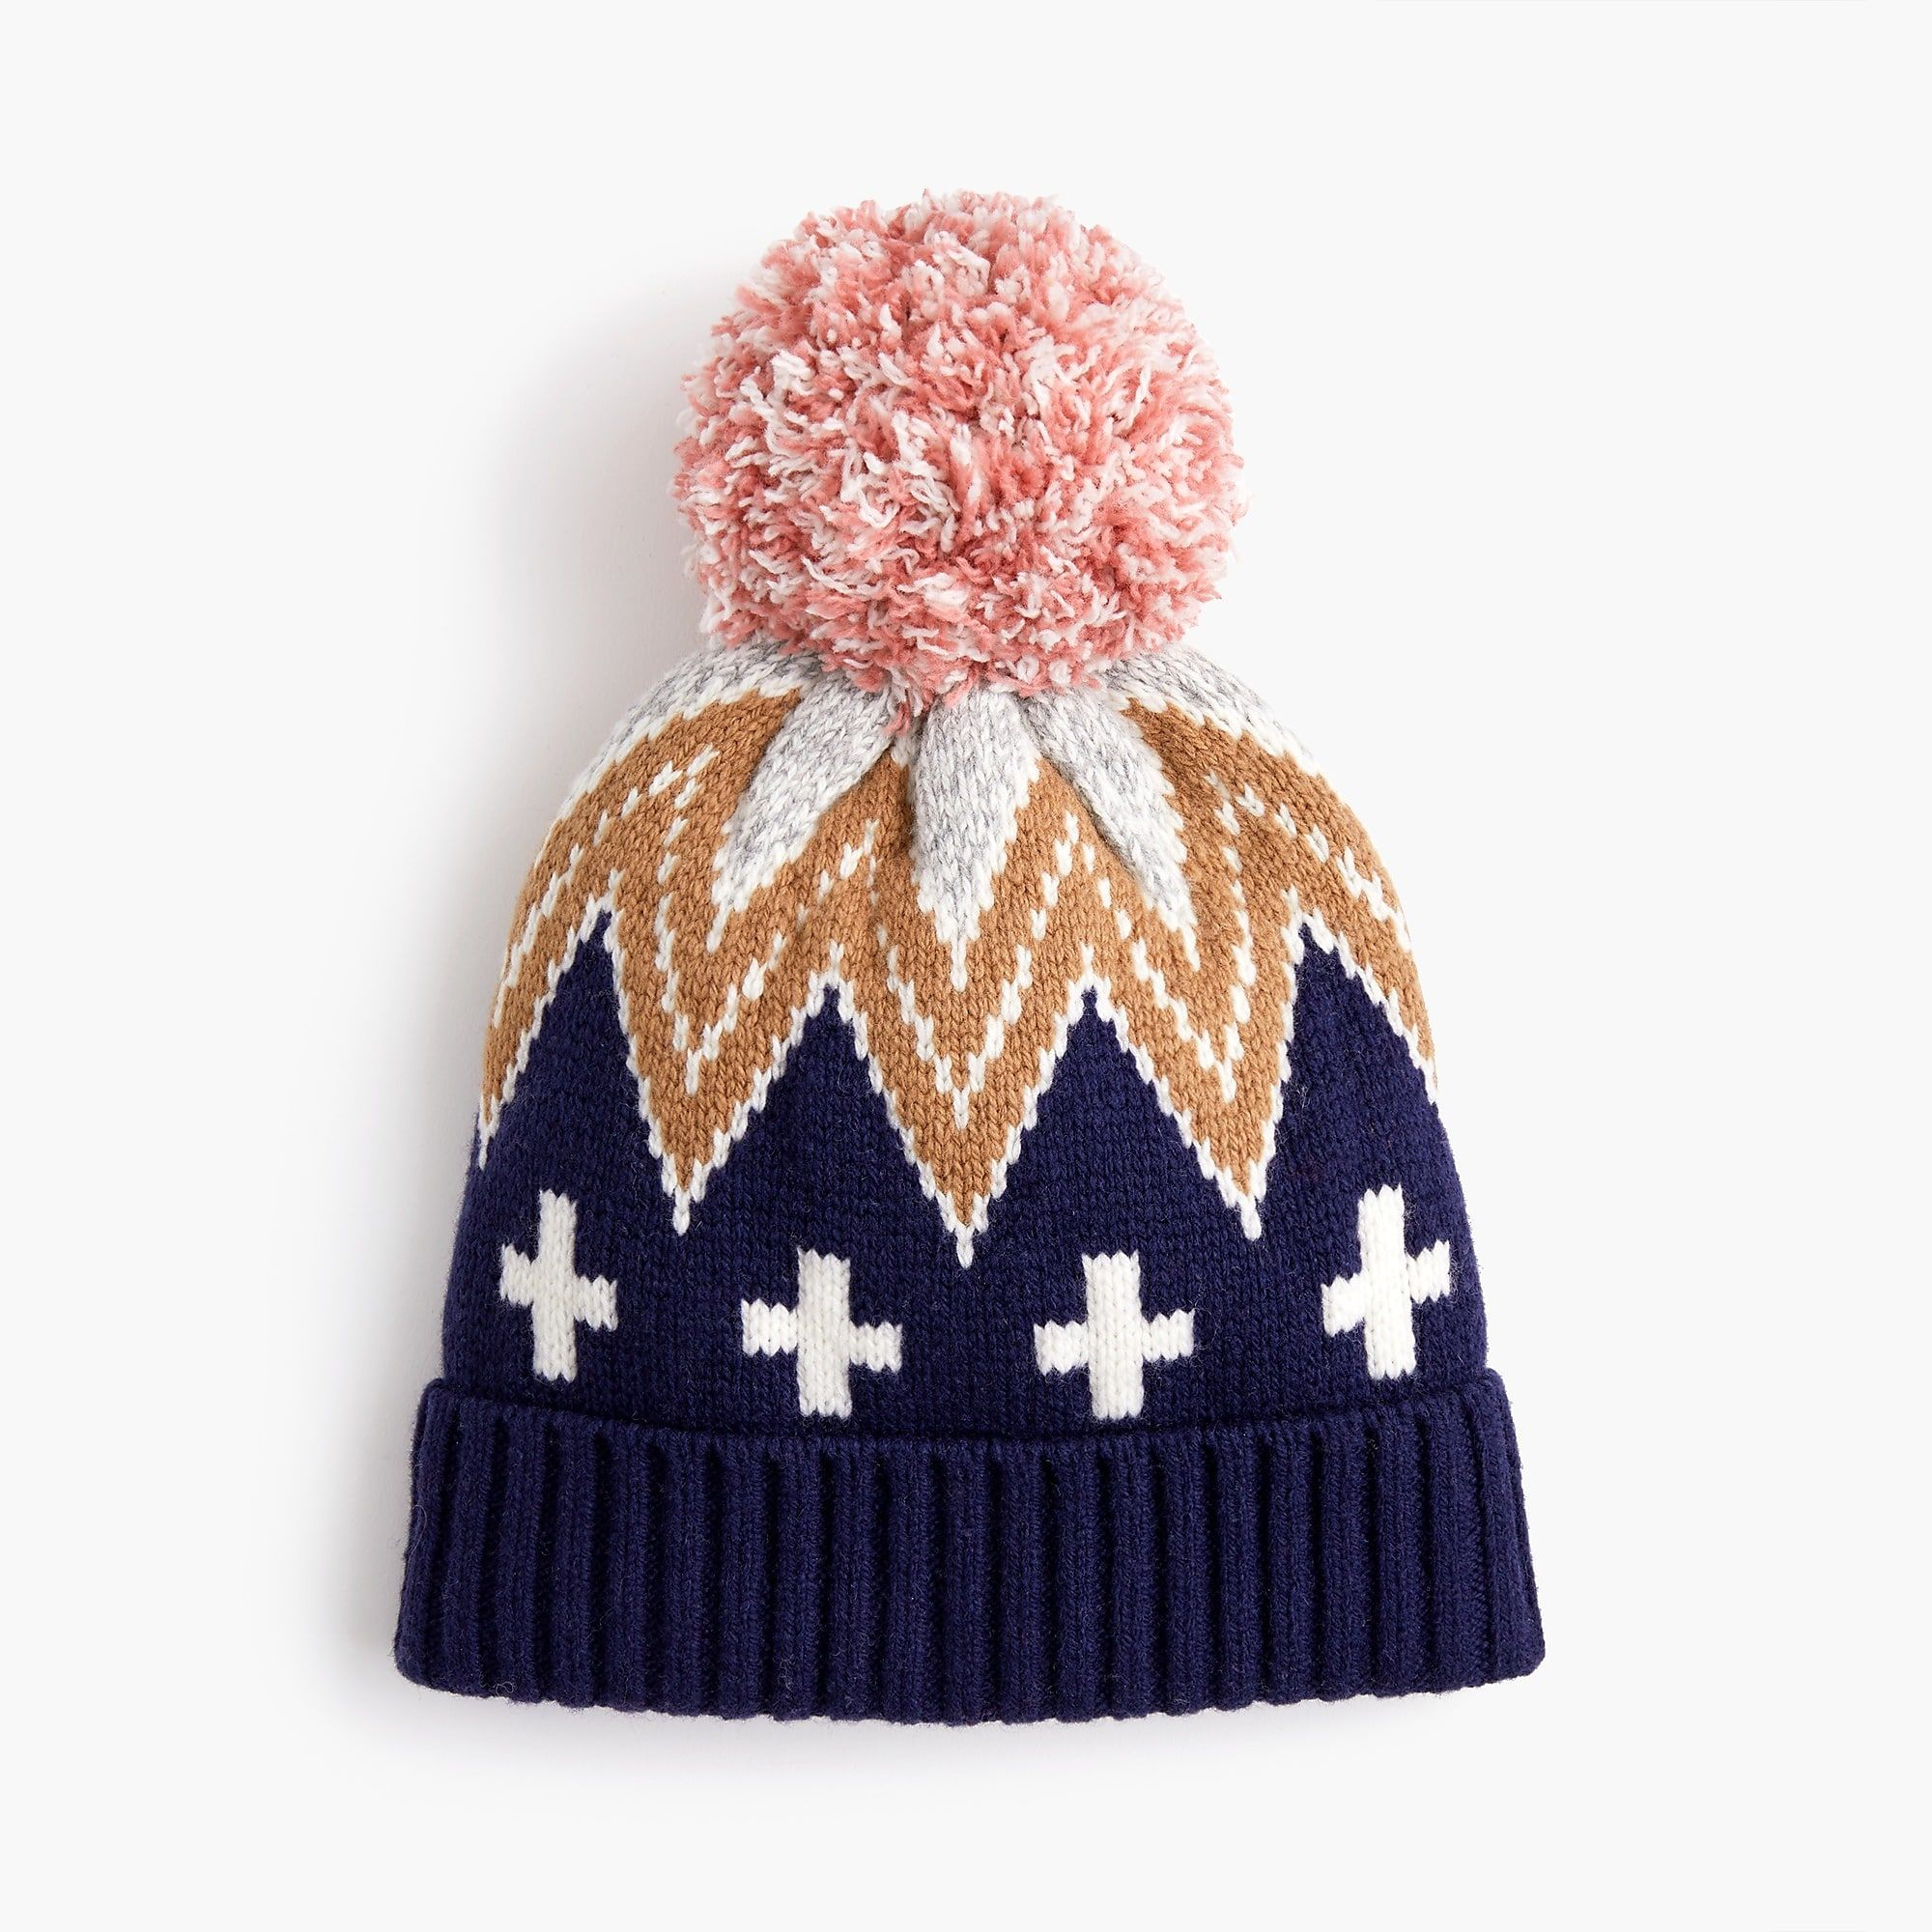 68e2bb0346dc8 Patchwork Fair Isle knit hat   Women For The Great Outdoors